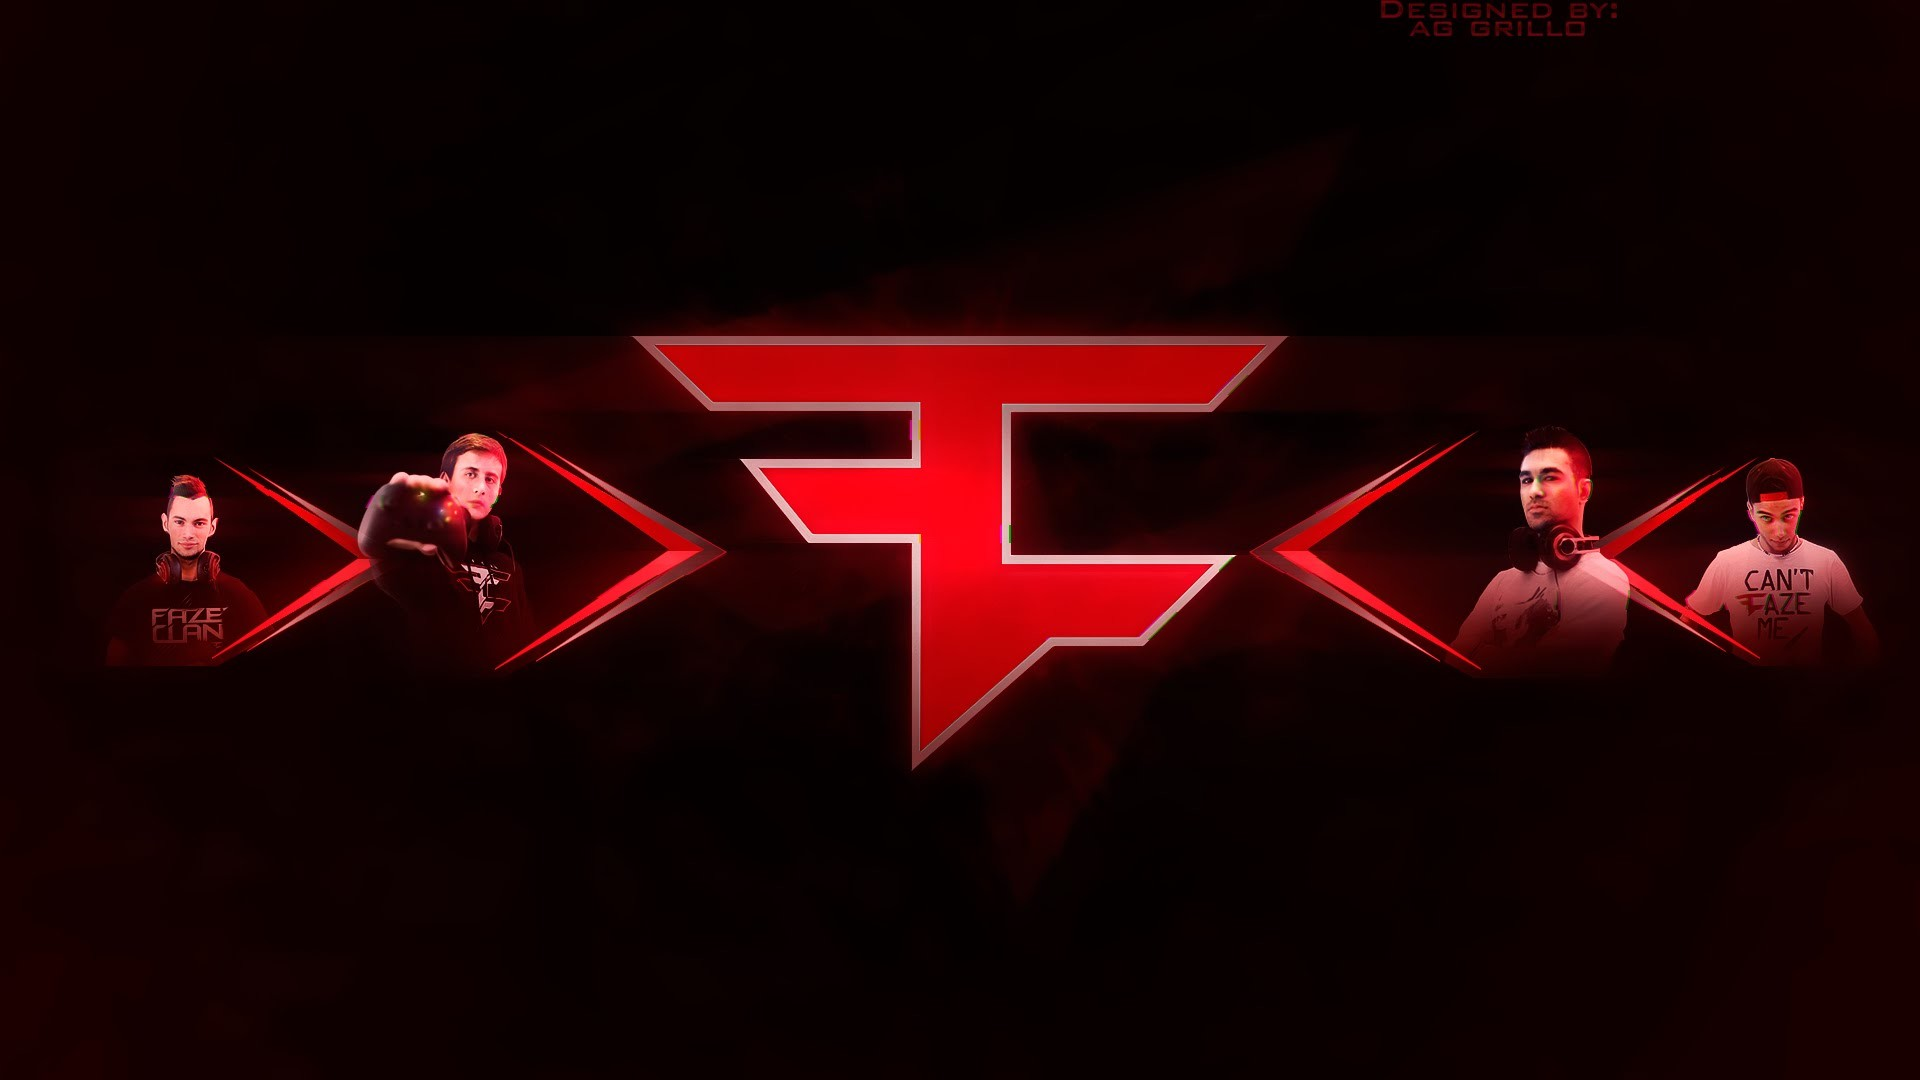 Faze Logo iPhone Wallpaper (92+ images)